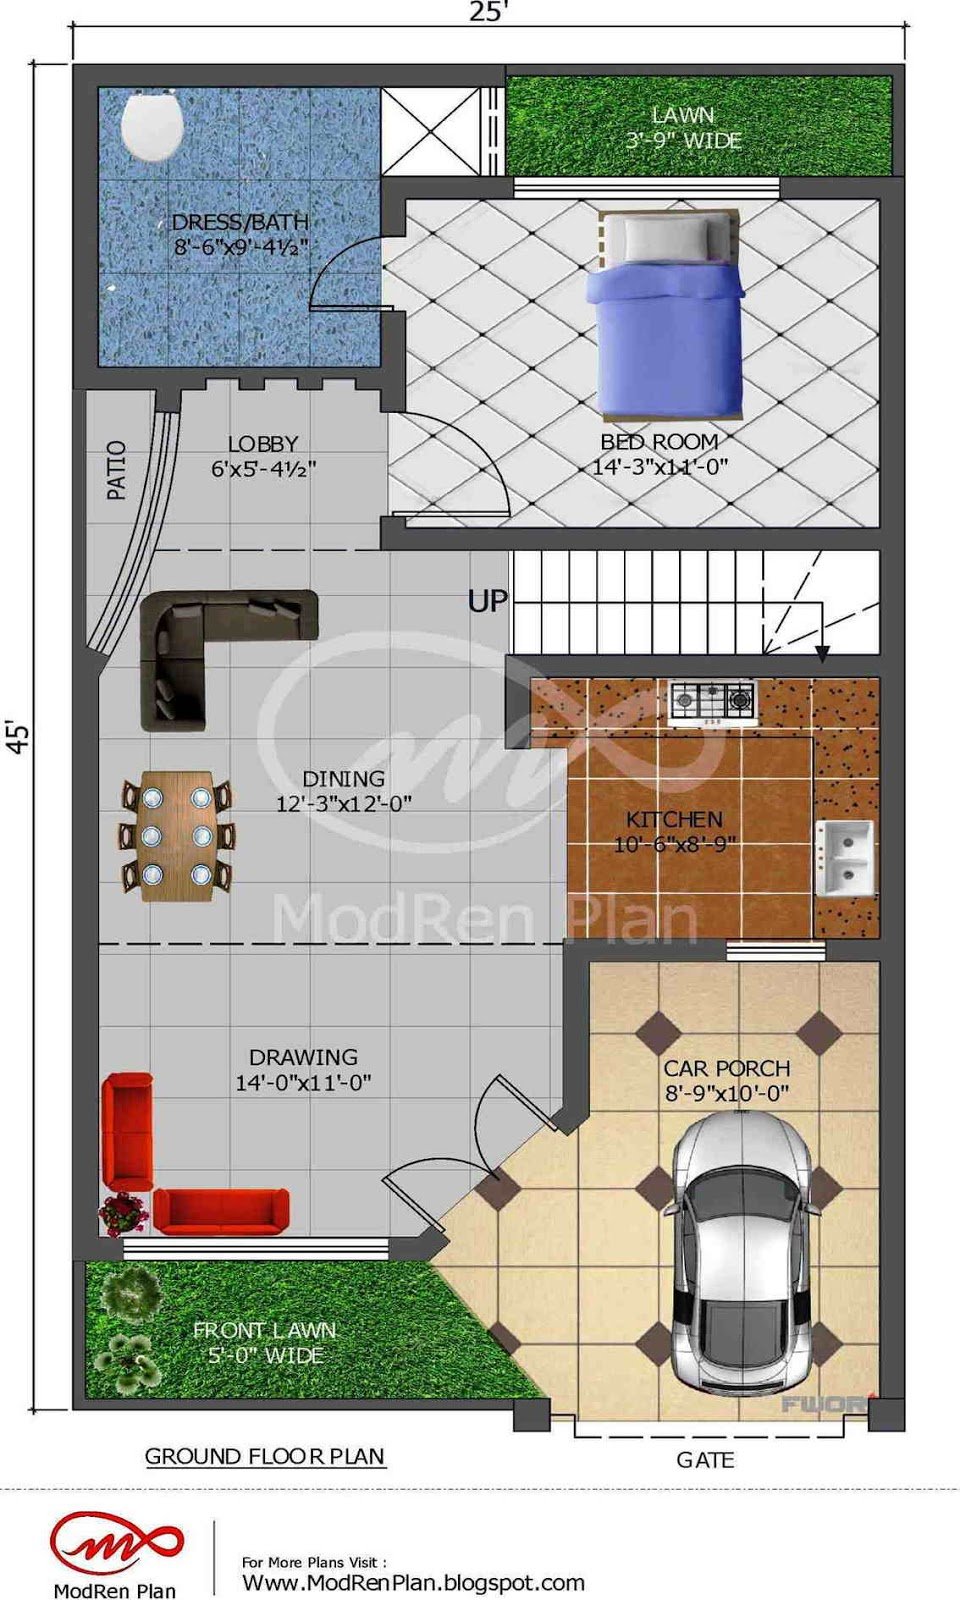 superb house map 25 x 45 3 modren plan blogger